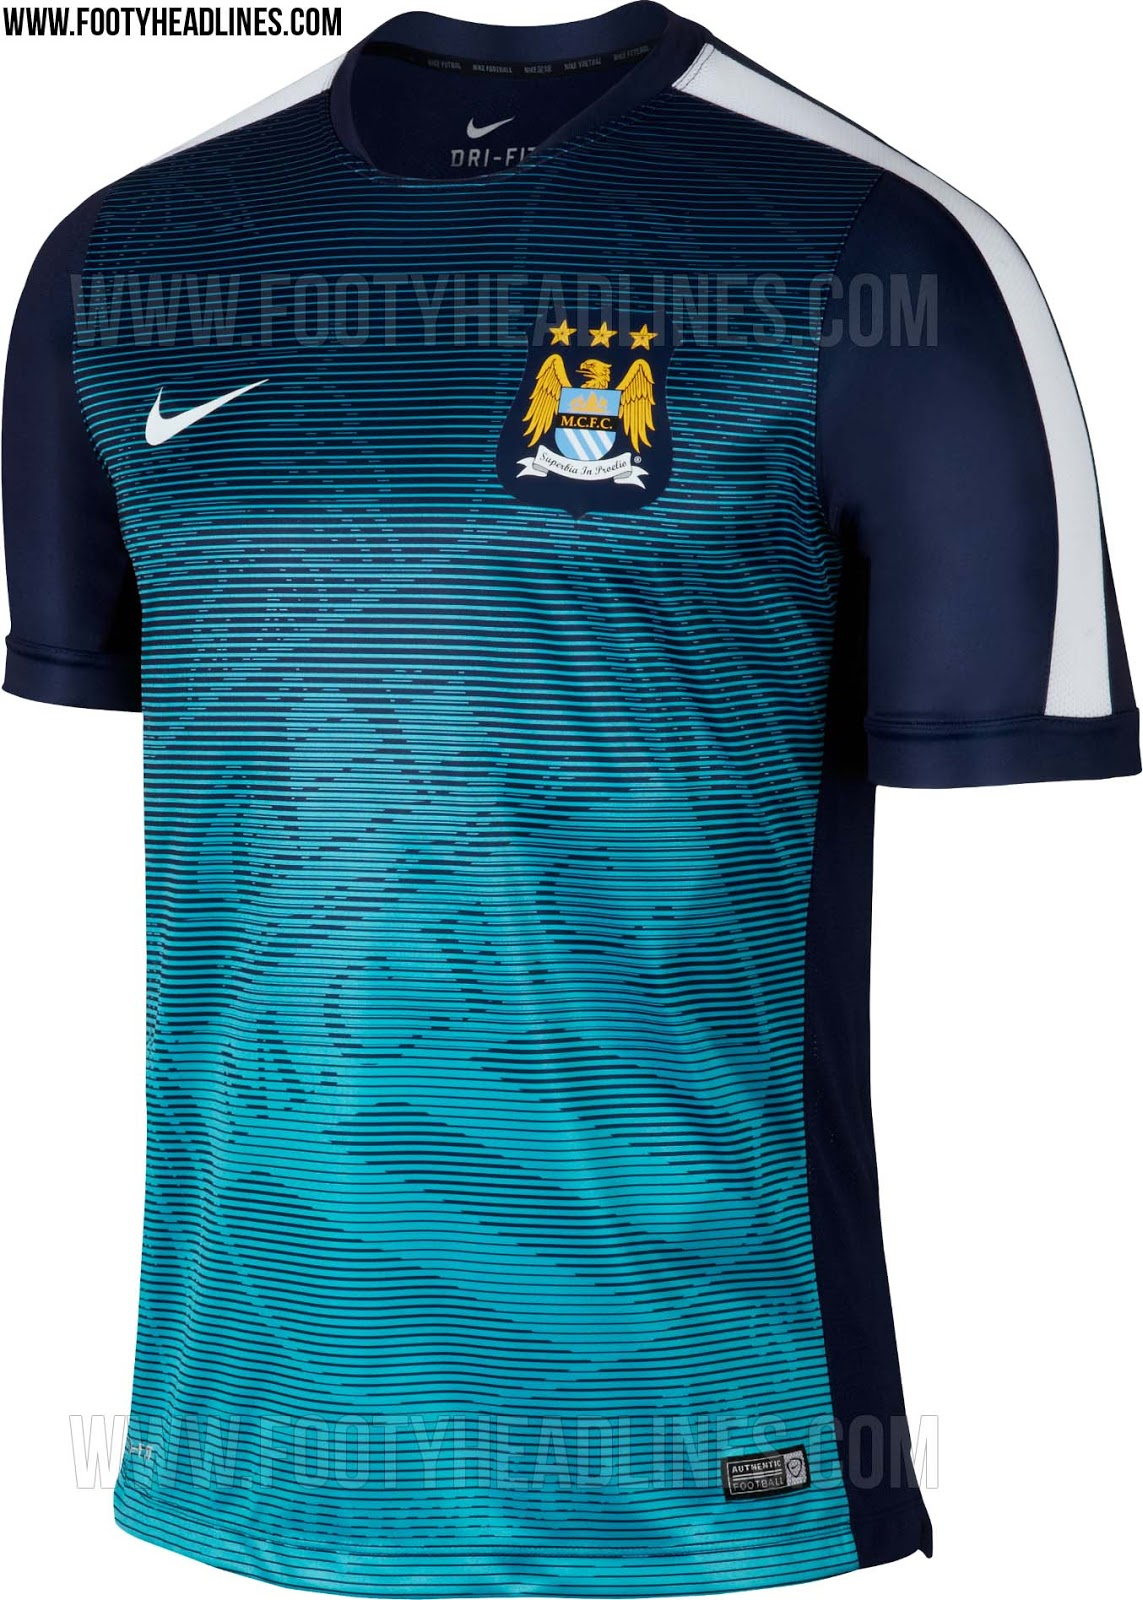 a9f1dc616b6 Discount Manchester City 2015 Training and Pre-Match Kits Revealed